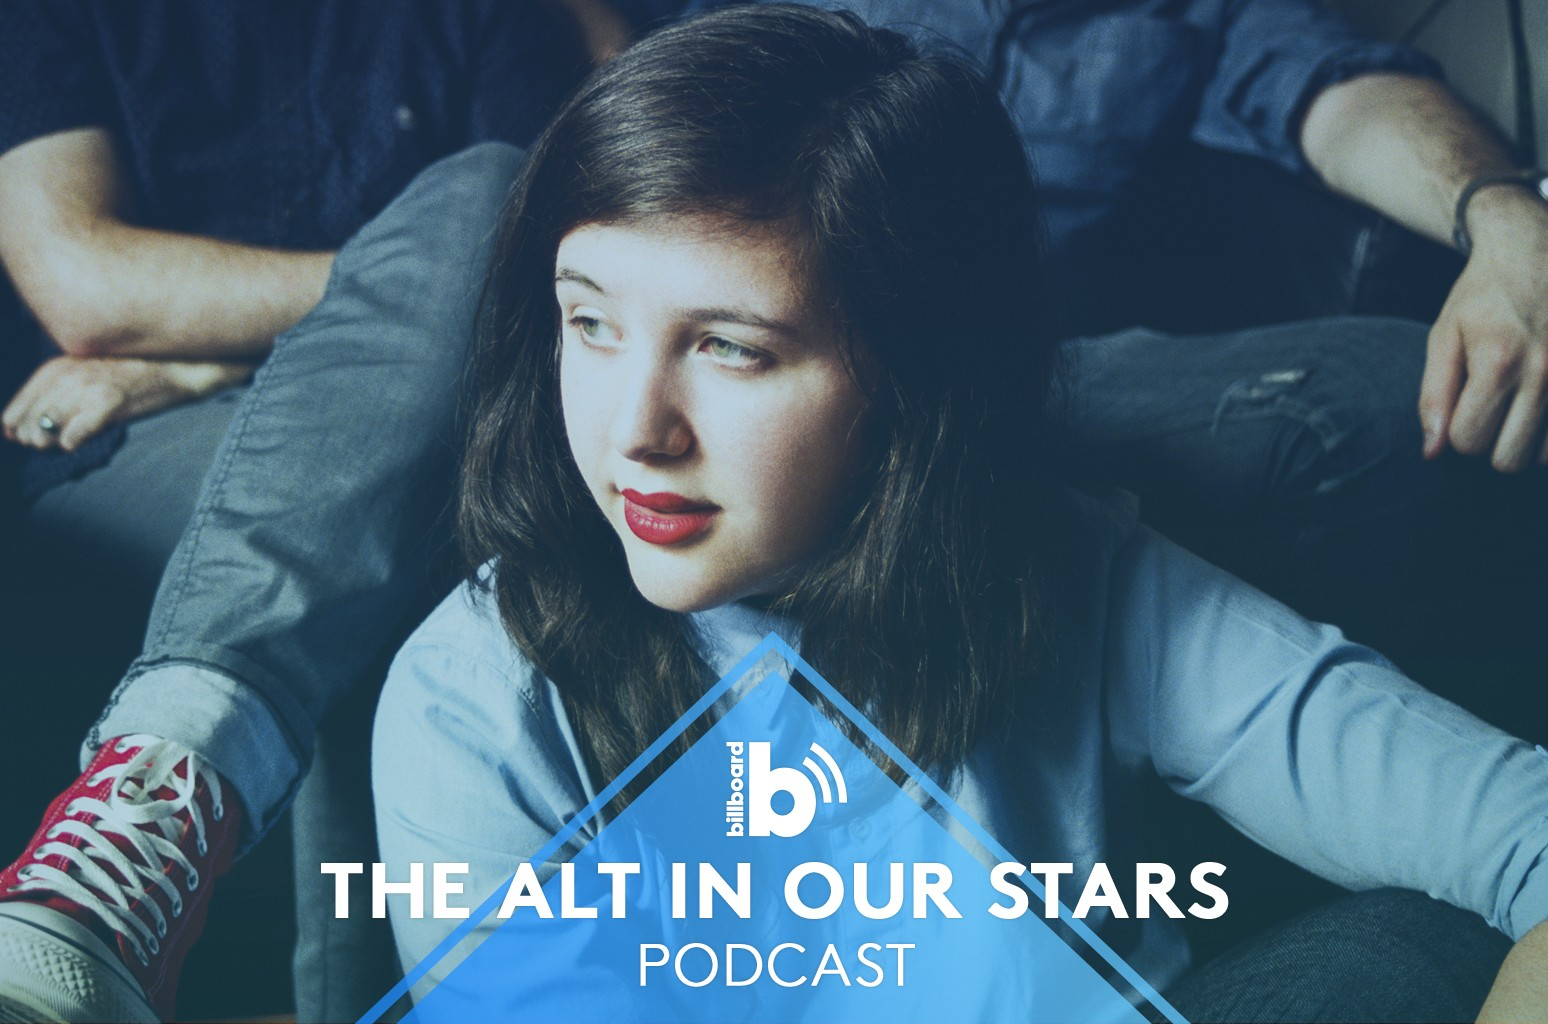 The Alt in Our Stars Podcast featuring: Lucy Dacus